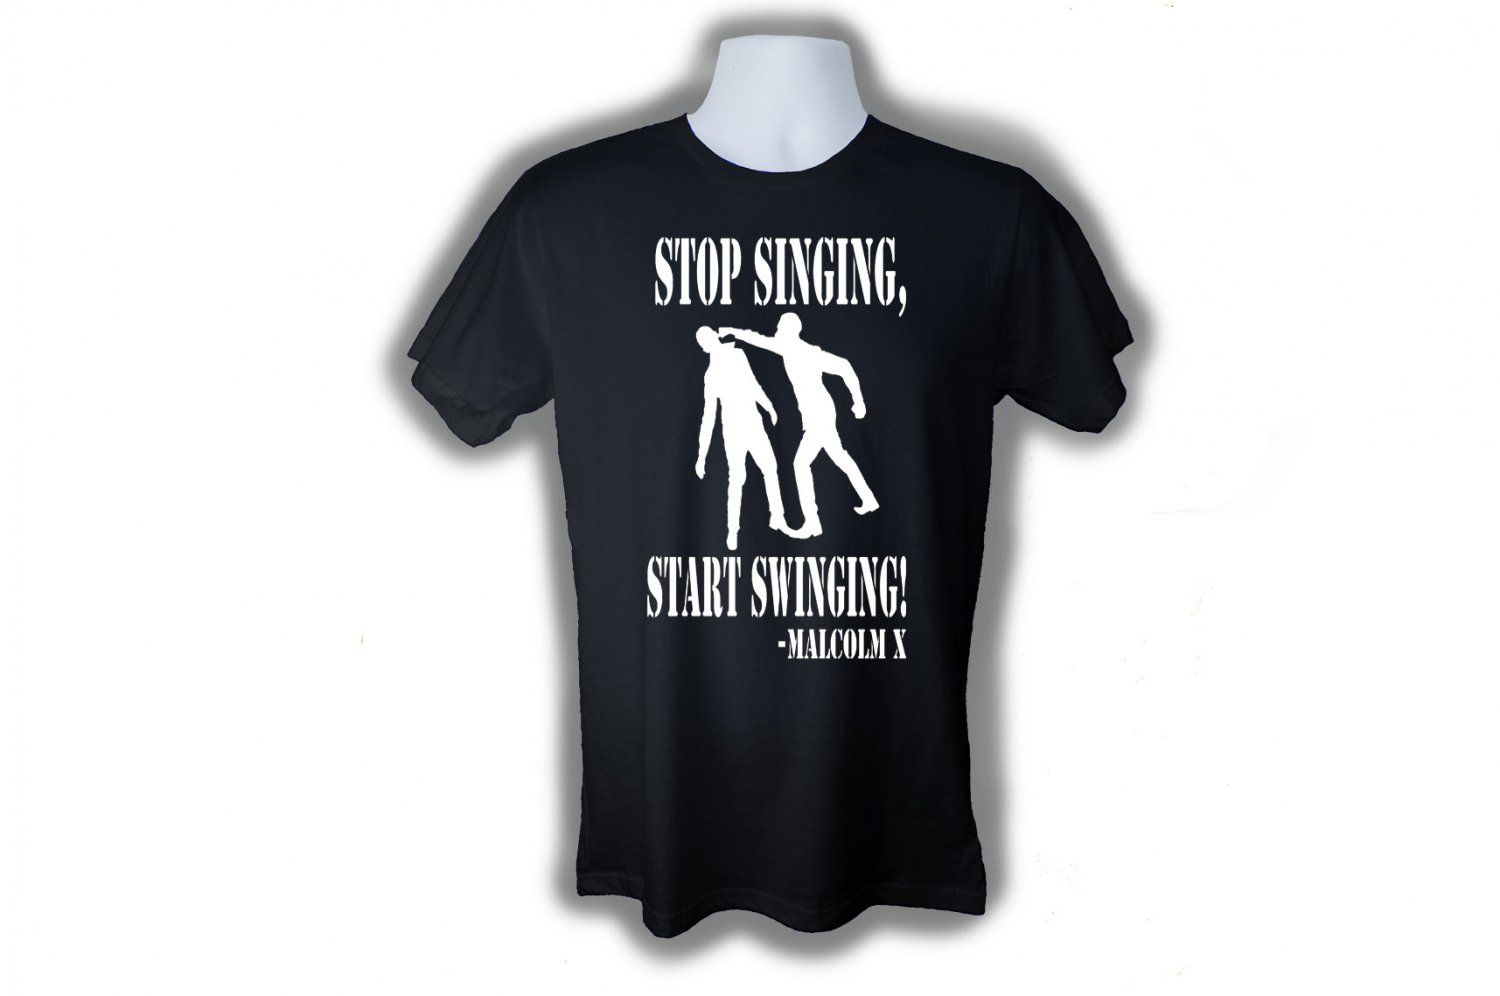 STOP SINGING AND START SWINGING MALCOLM X T-SHIRT(L)